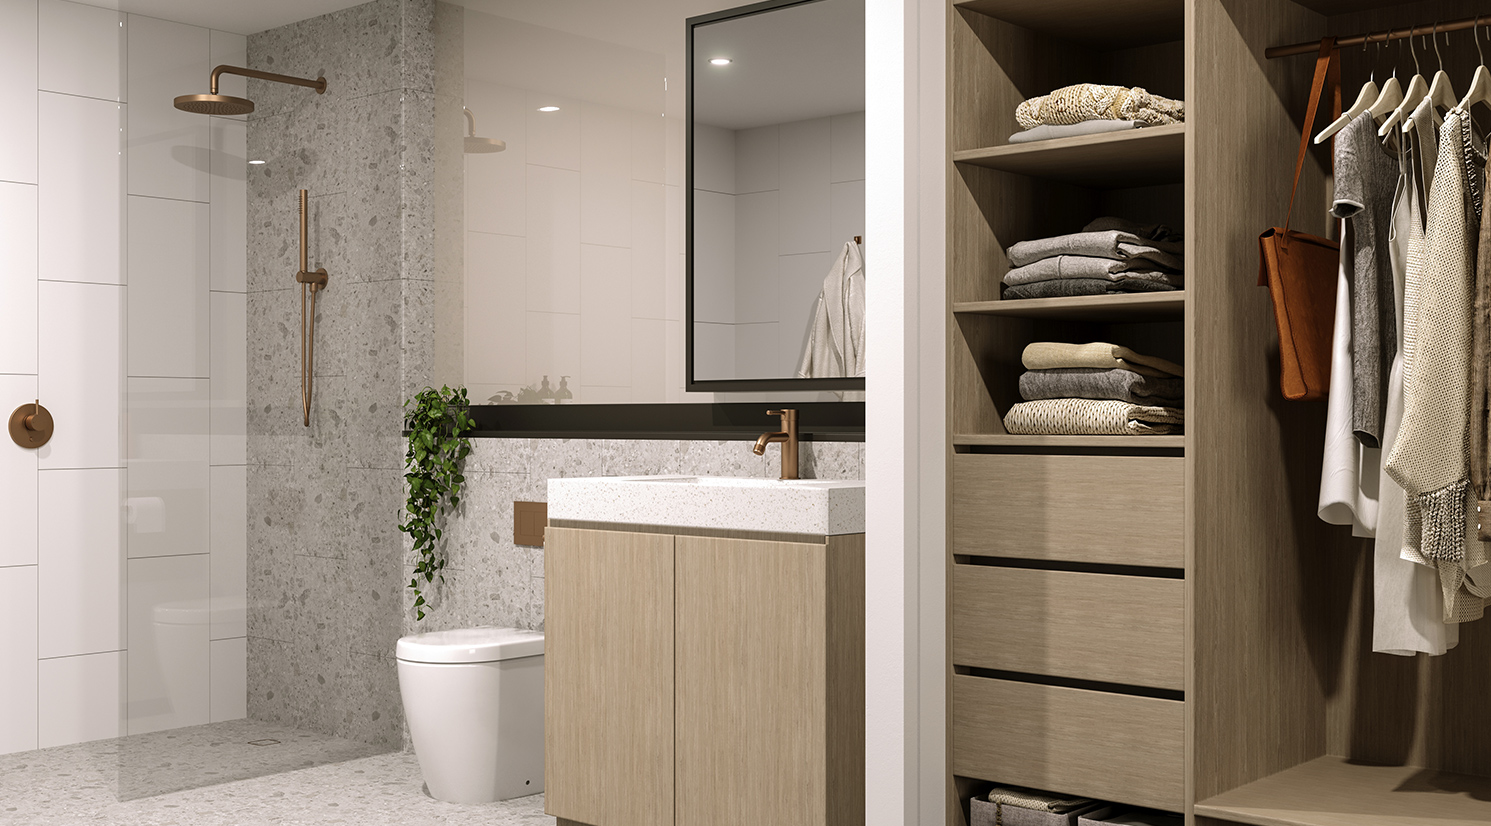 Luxury Bathroom Moonee Ponds Apartment